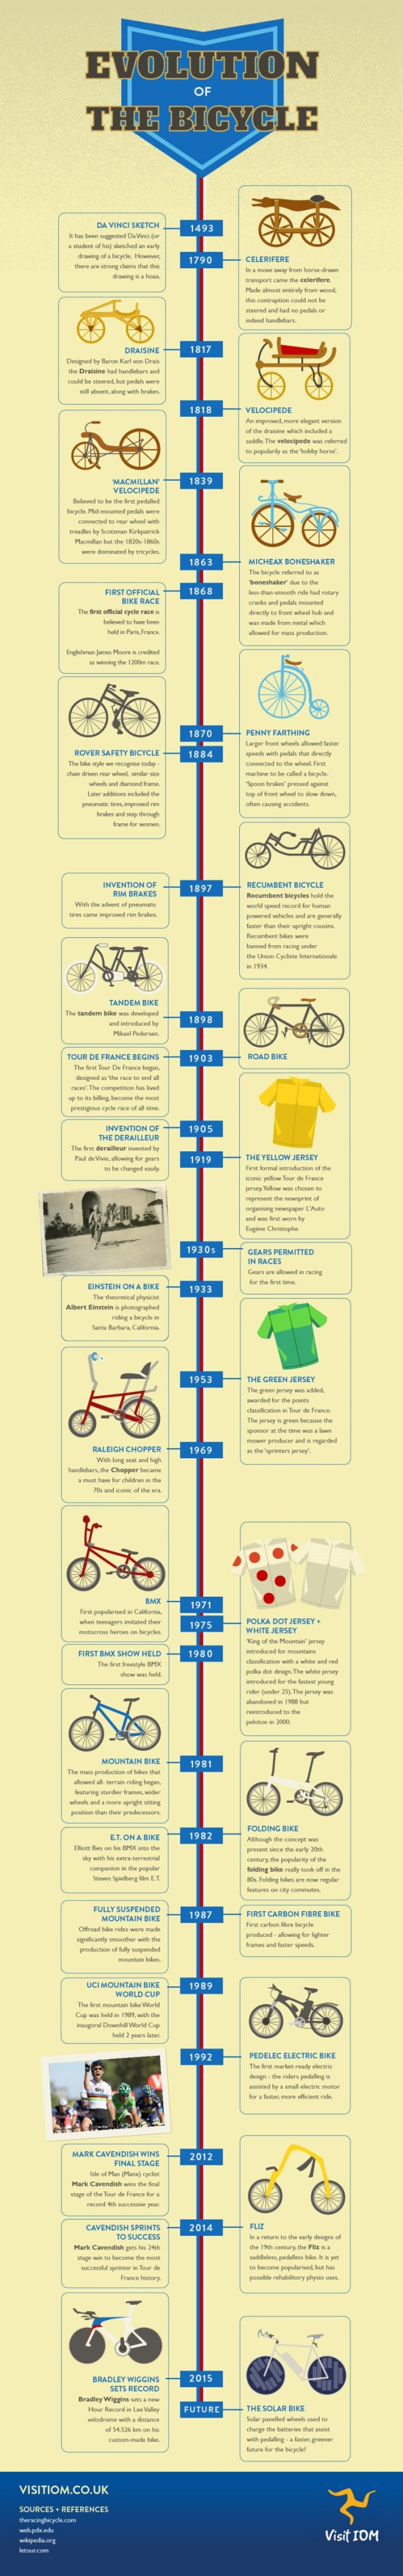 The Evolution of the Bicycle - #Infographic -